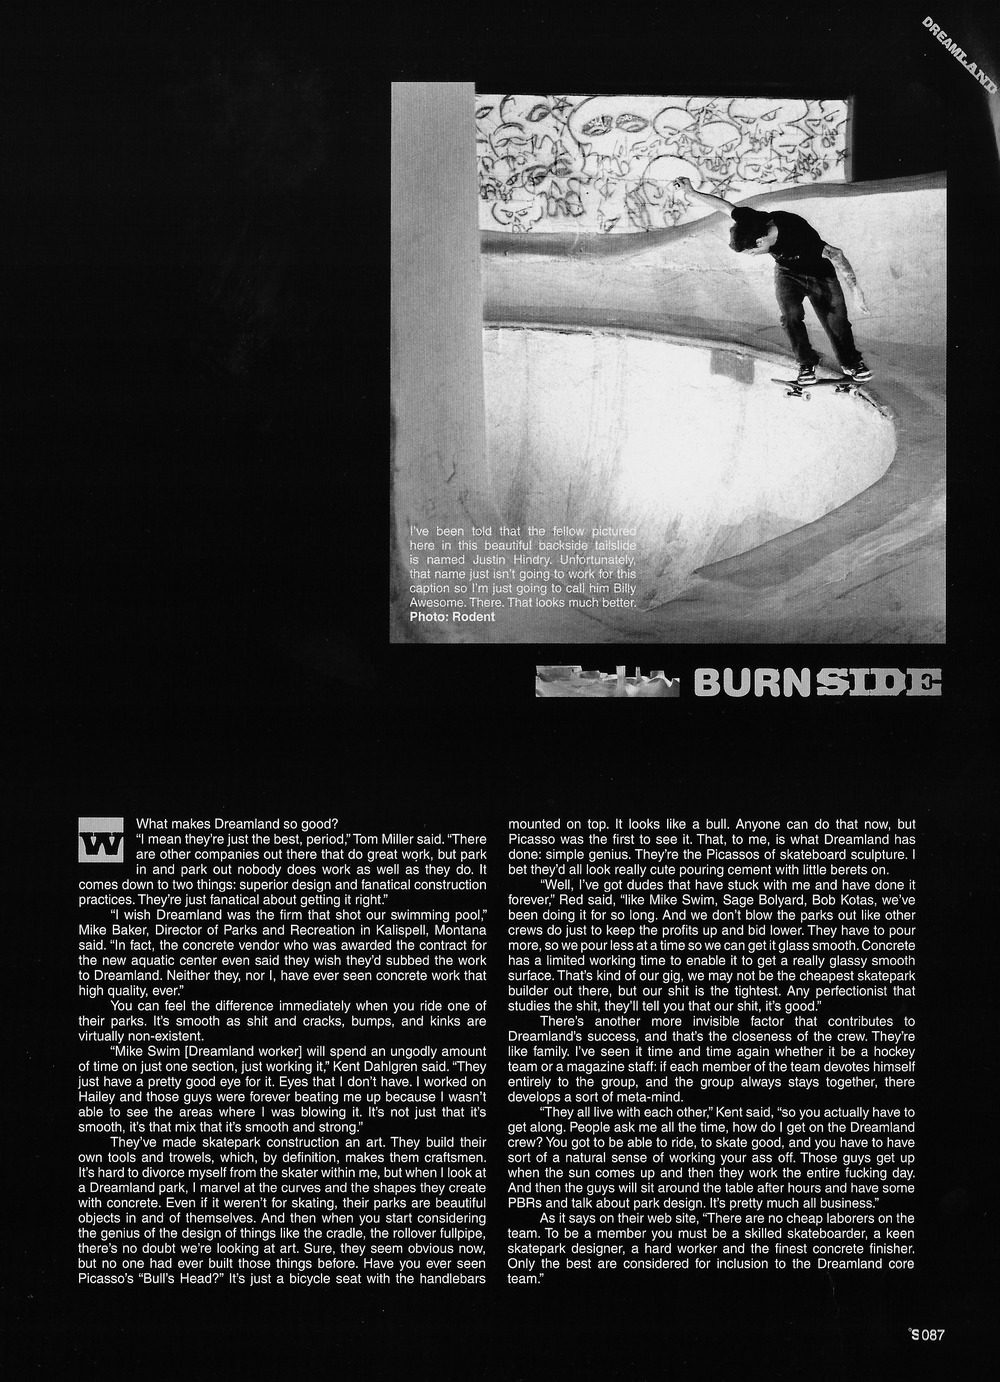 Justin Hindry, Burnside. The Skateboard Mag. Photo: Rodent